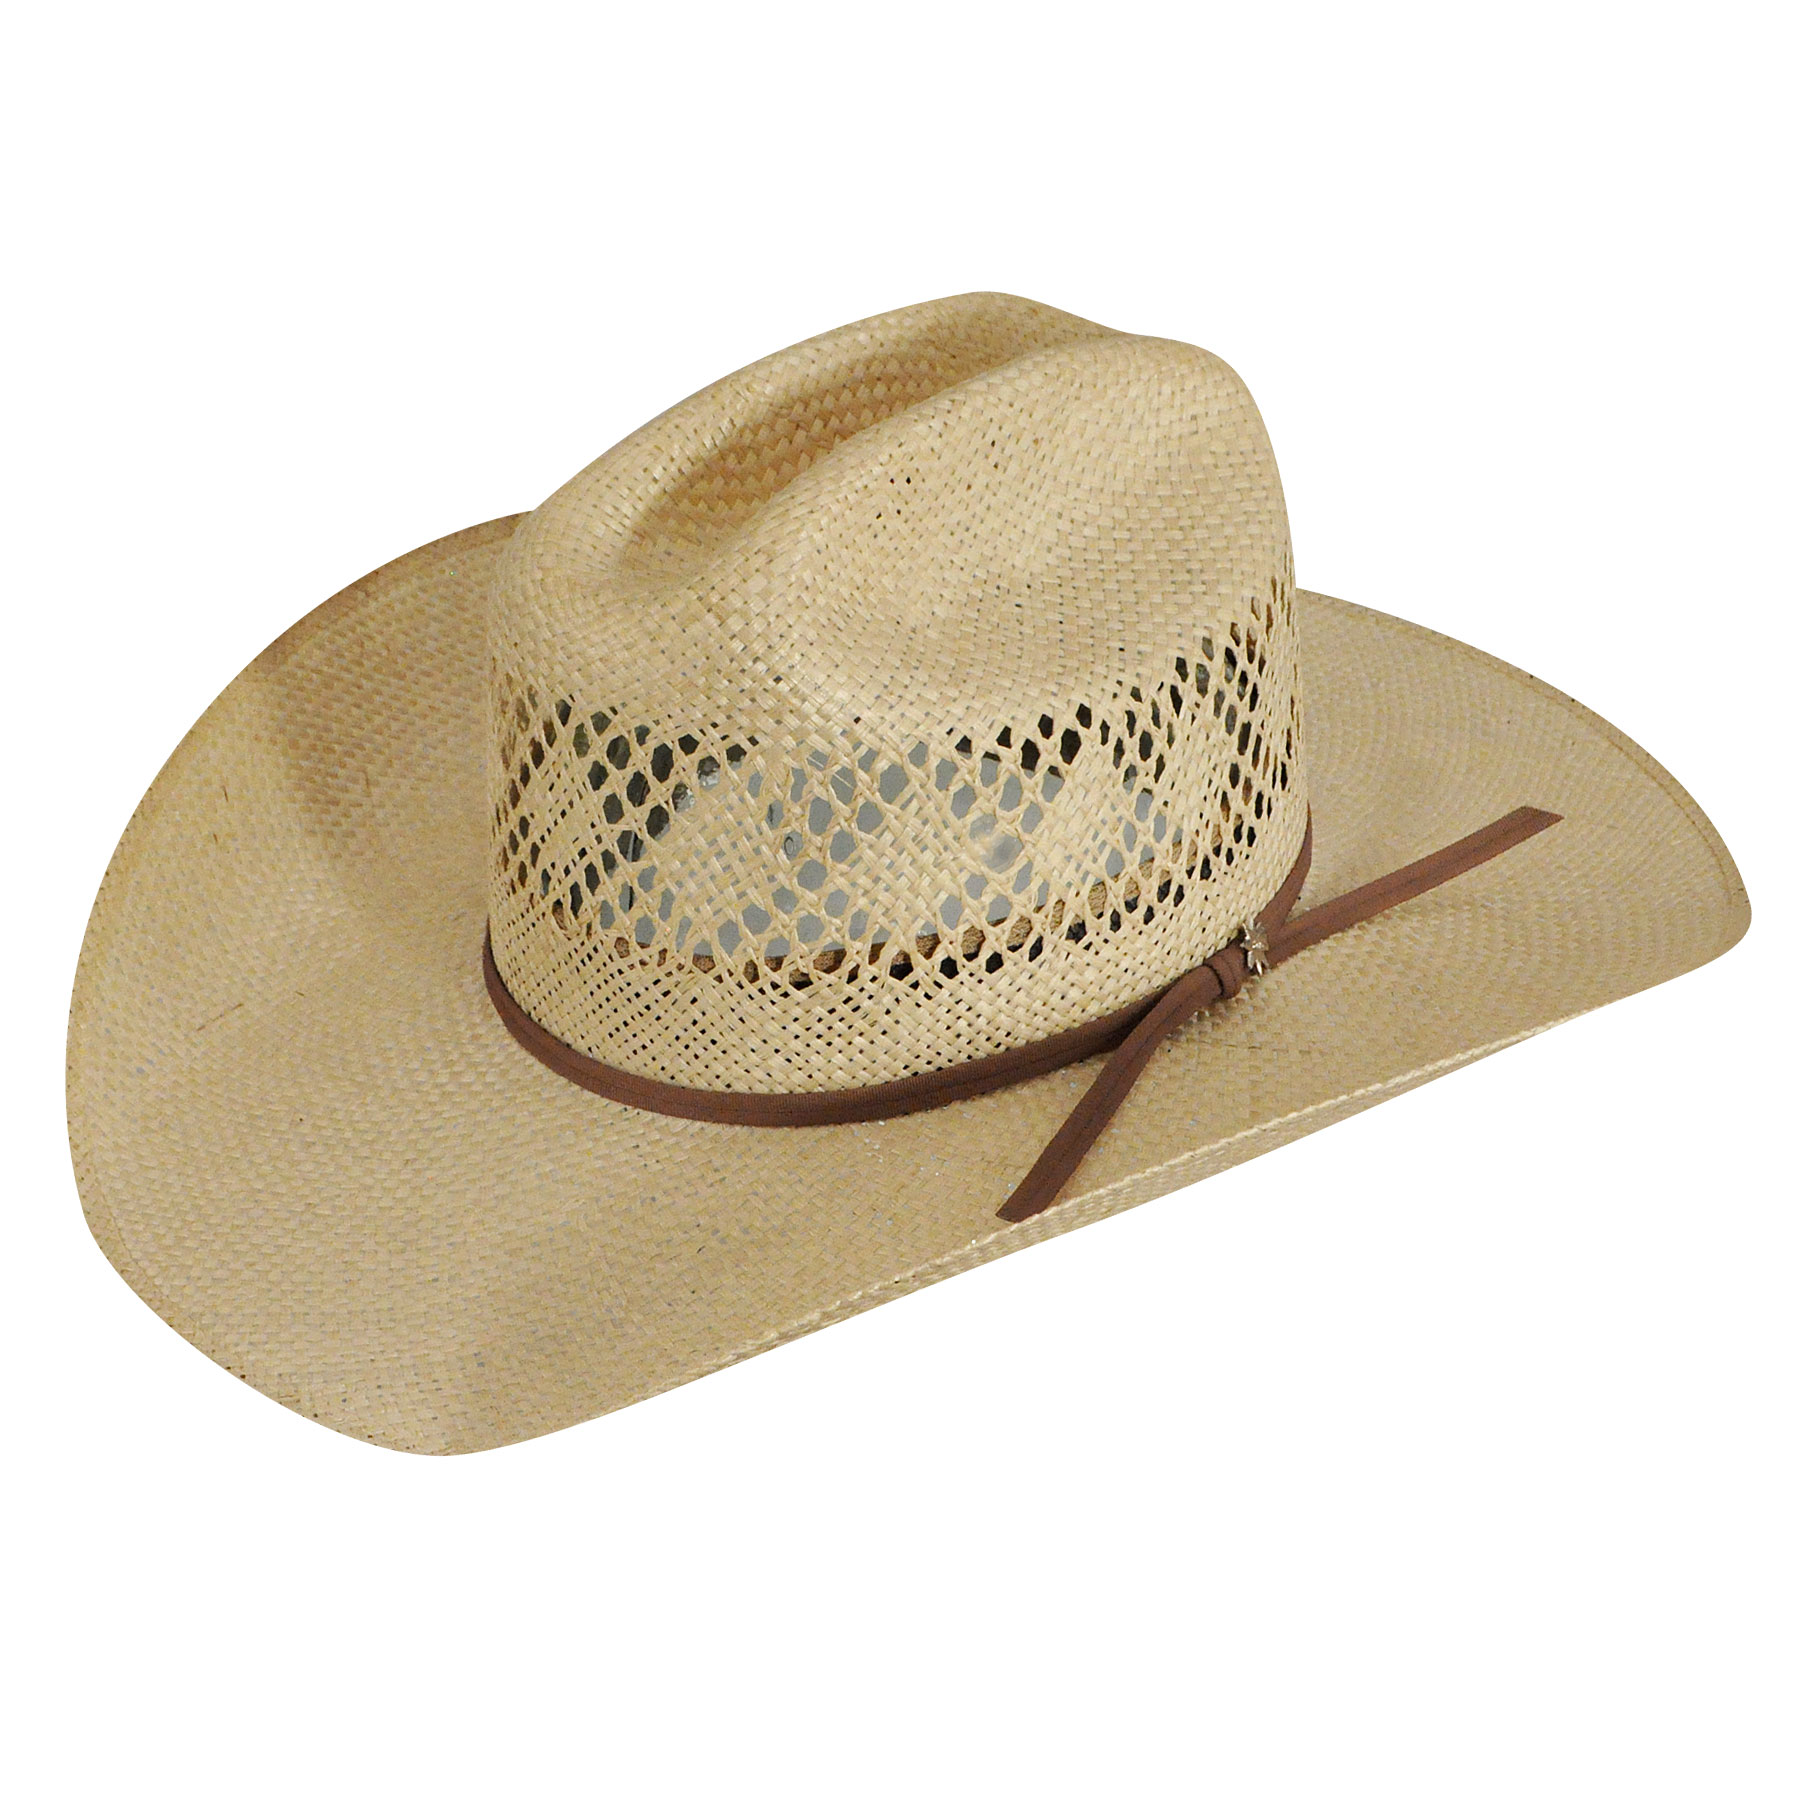 18f25970449ac Bailey Tex 10X Straw Hat. Tap to expand